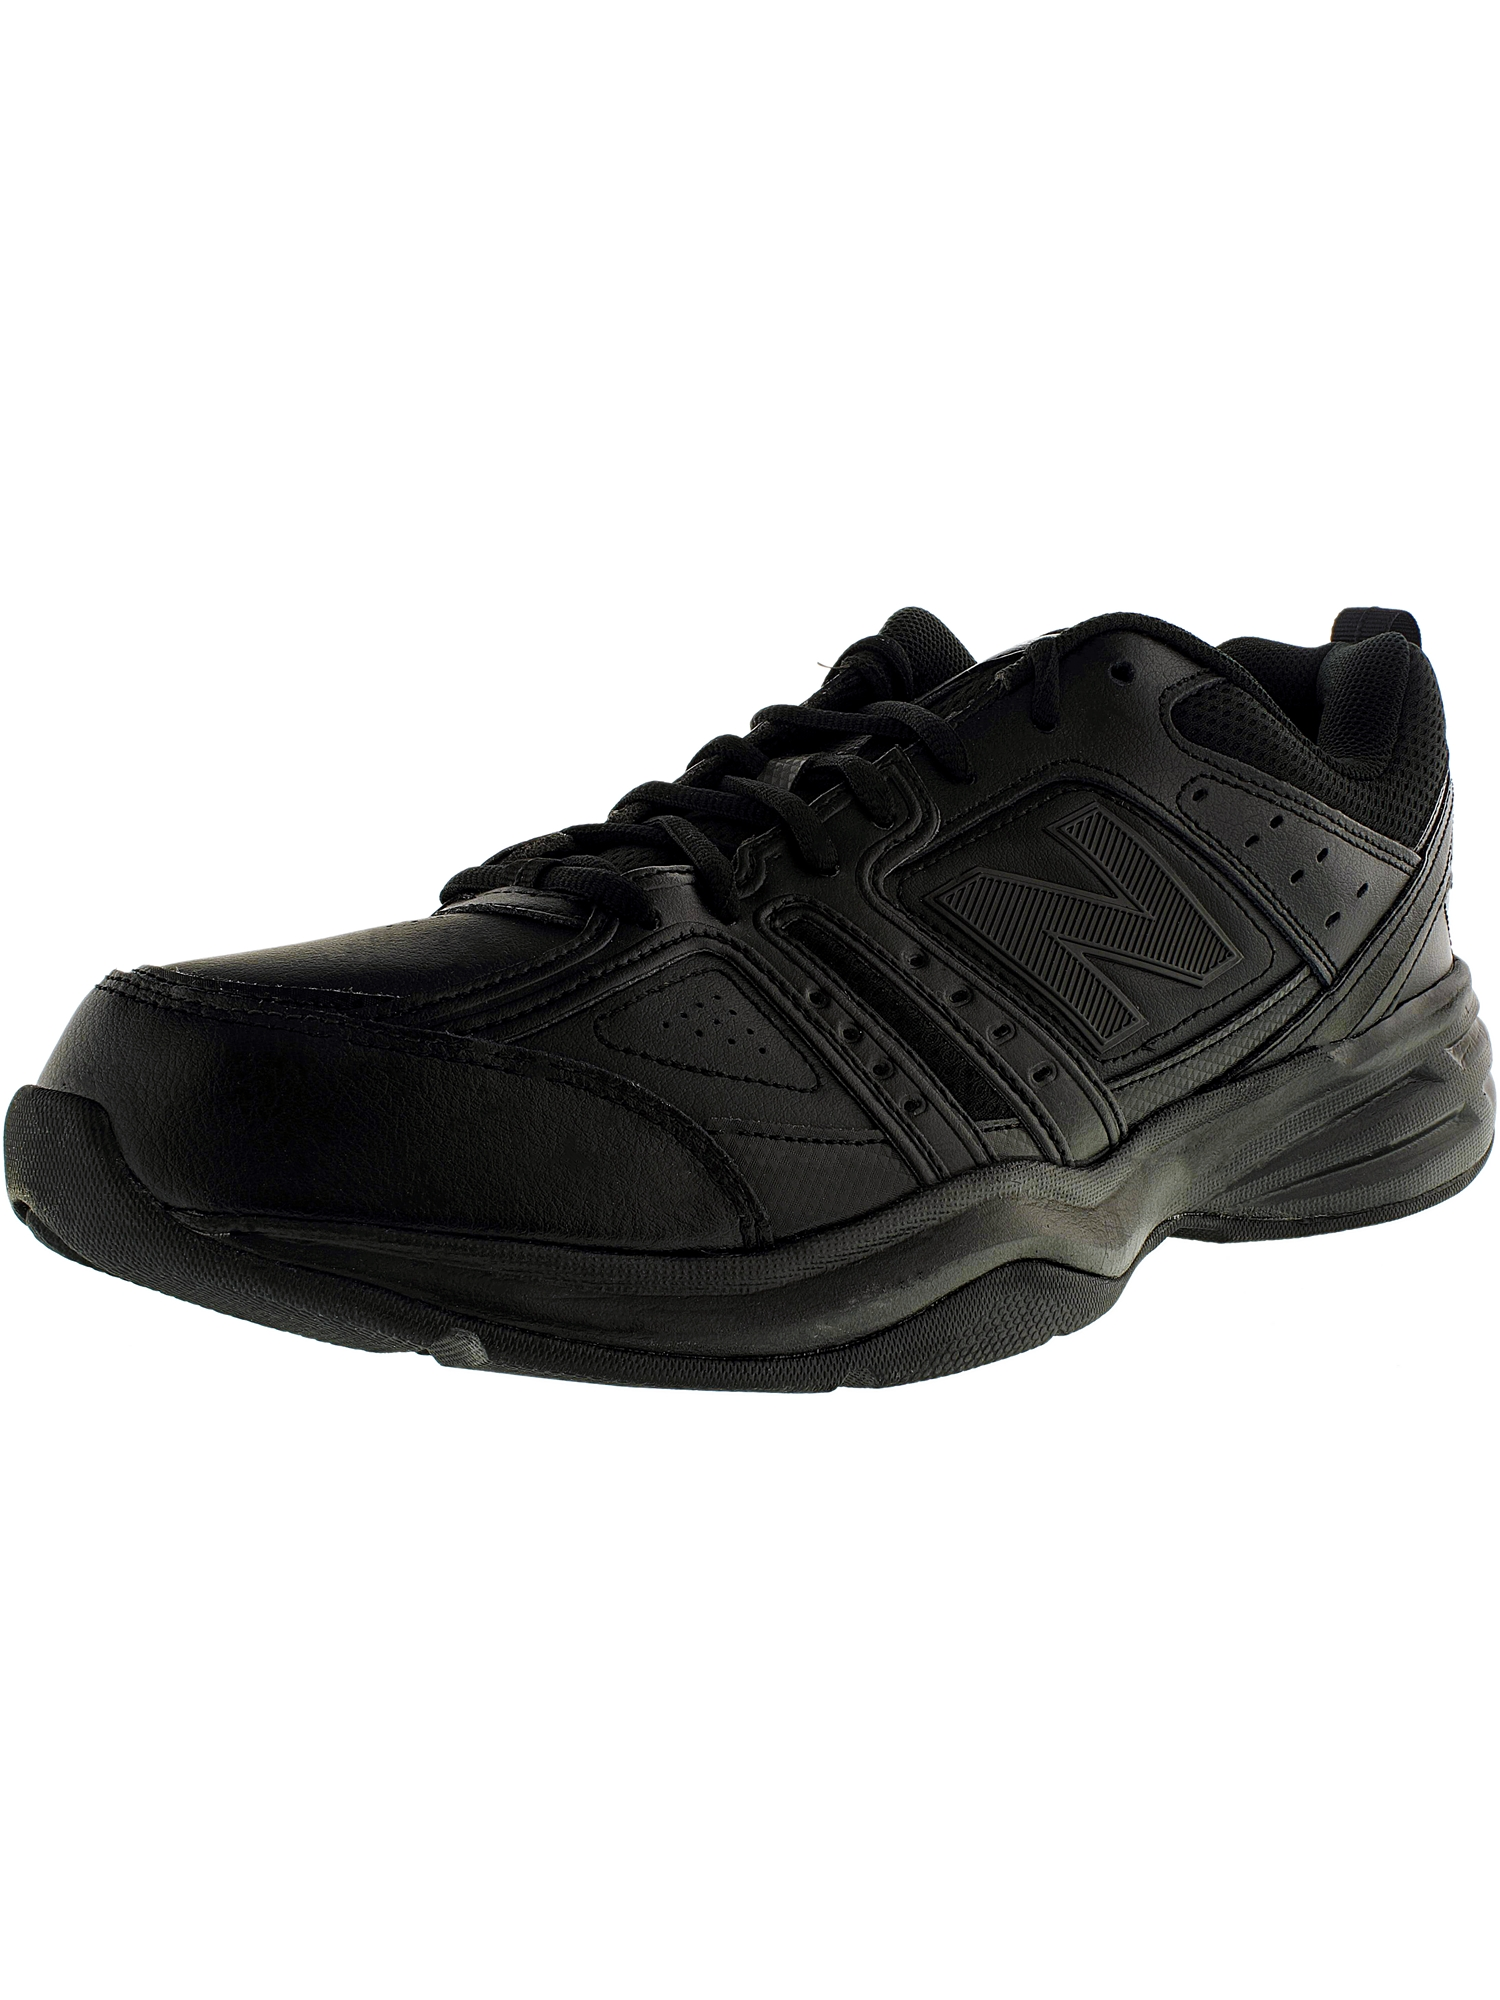 New Balance Men's Mx409 Bk2 Ankle-High Walking Shoe - 8M